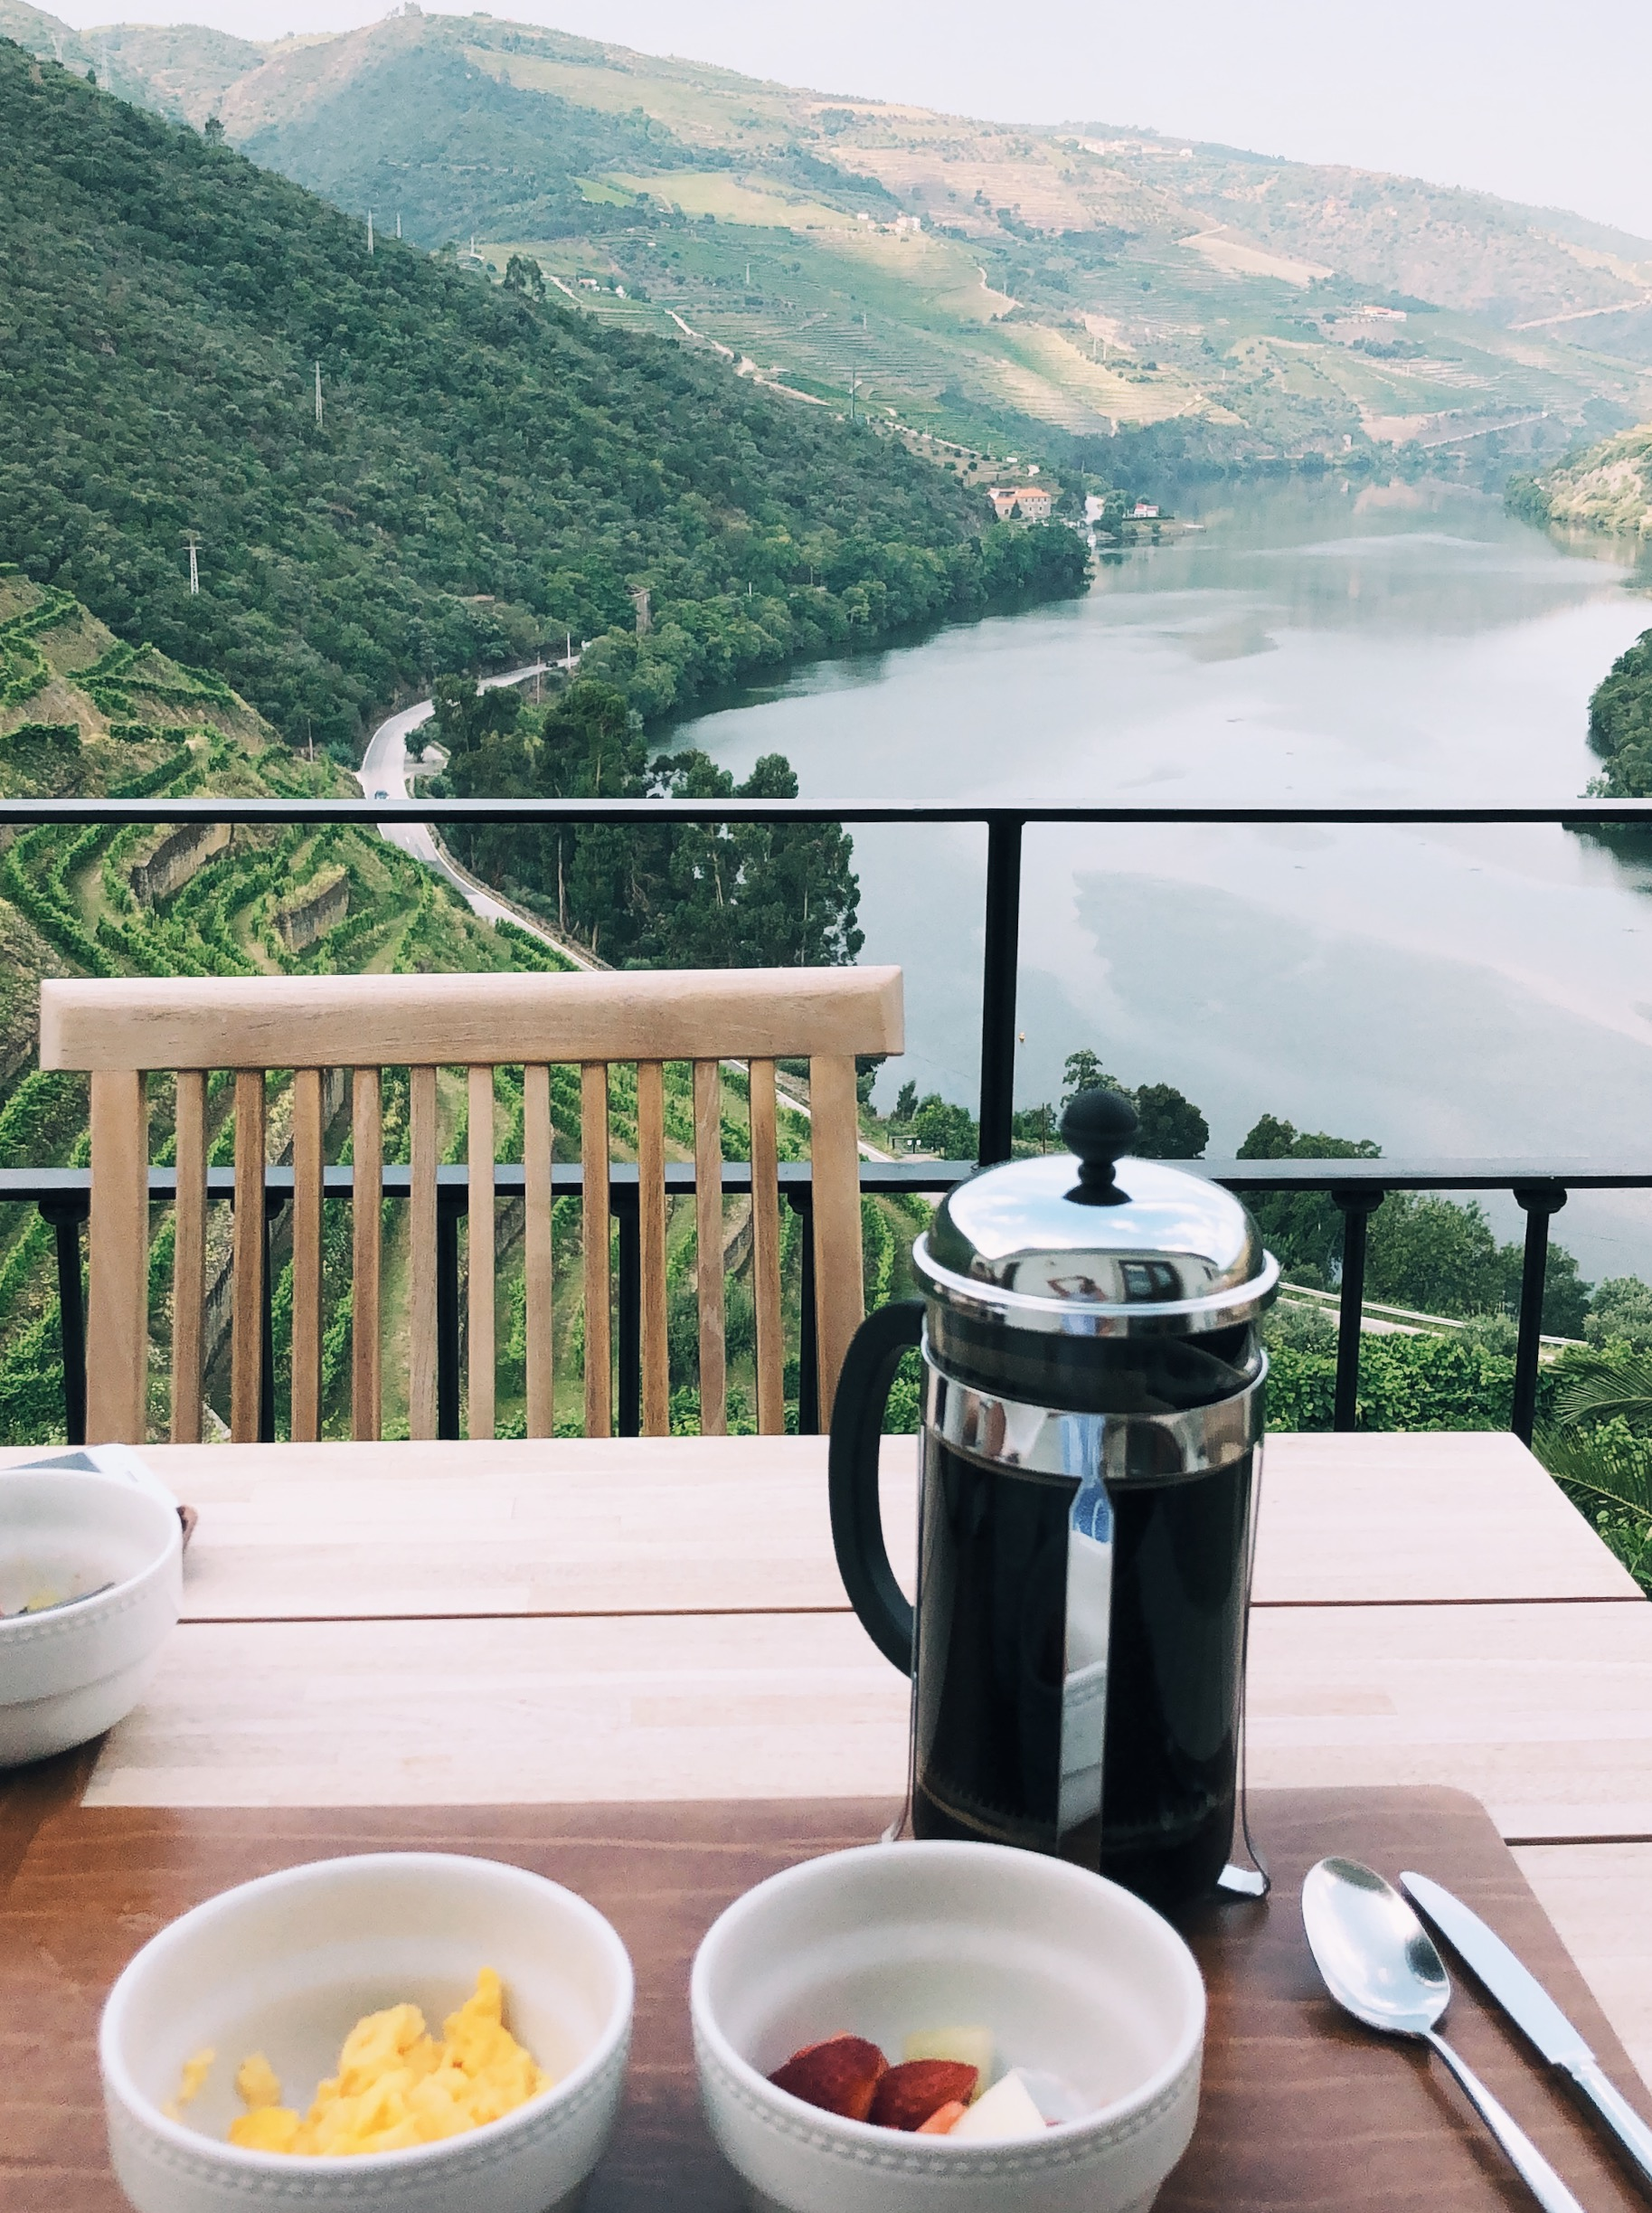 Quinta do Pego breakfast and French press coffee on the terrace